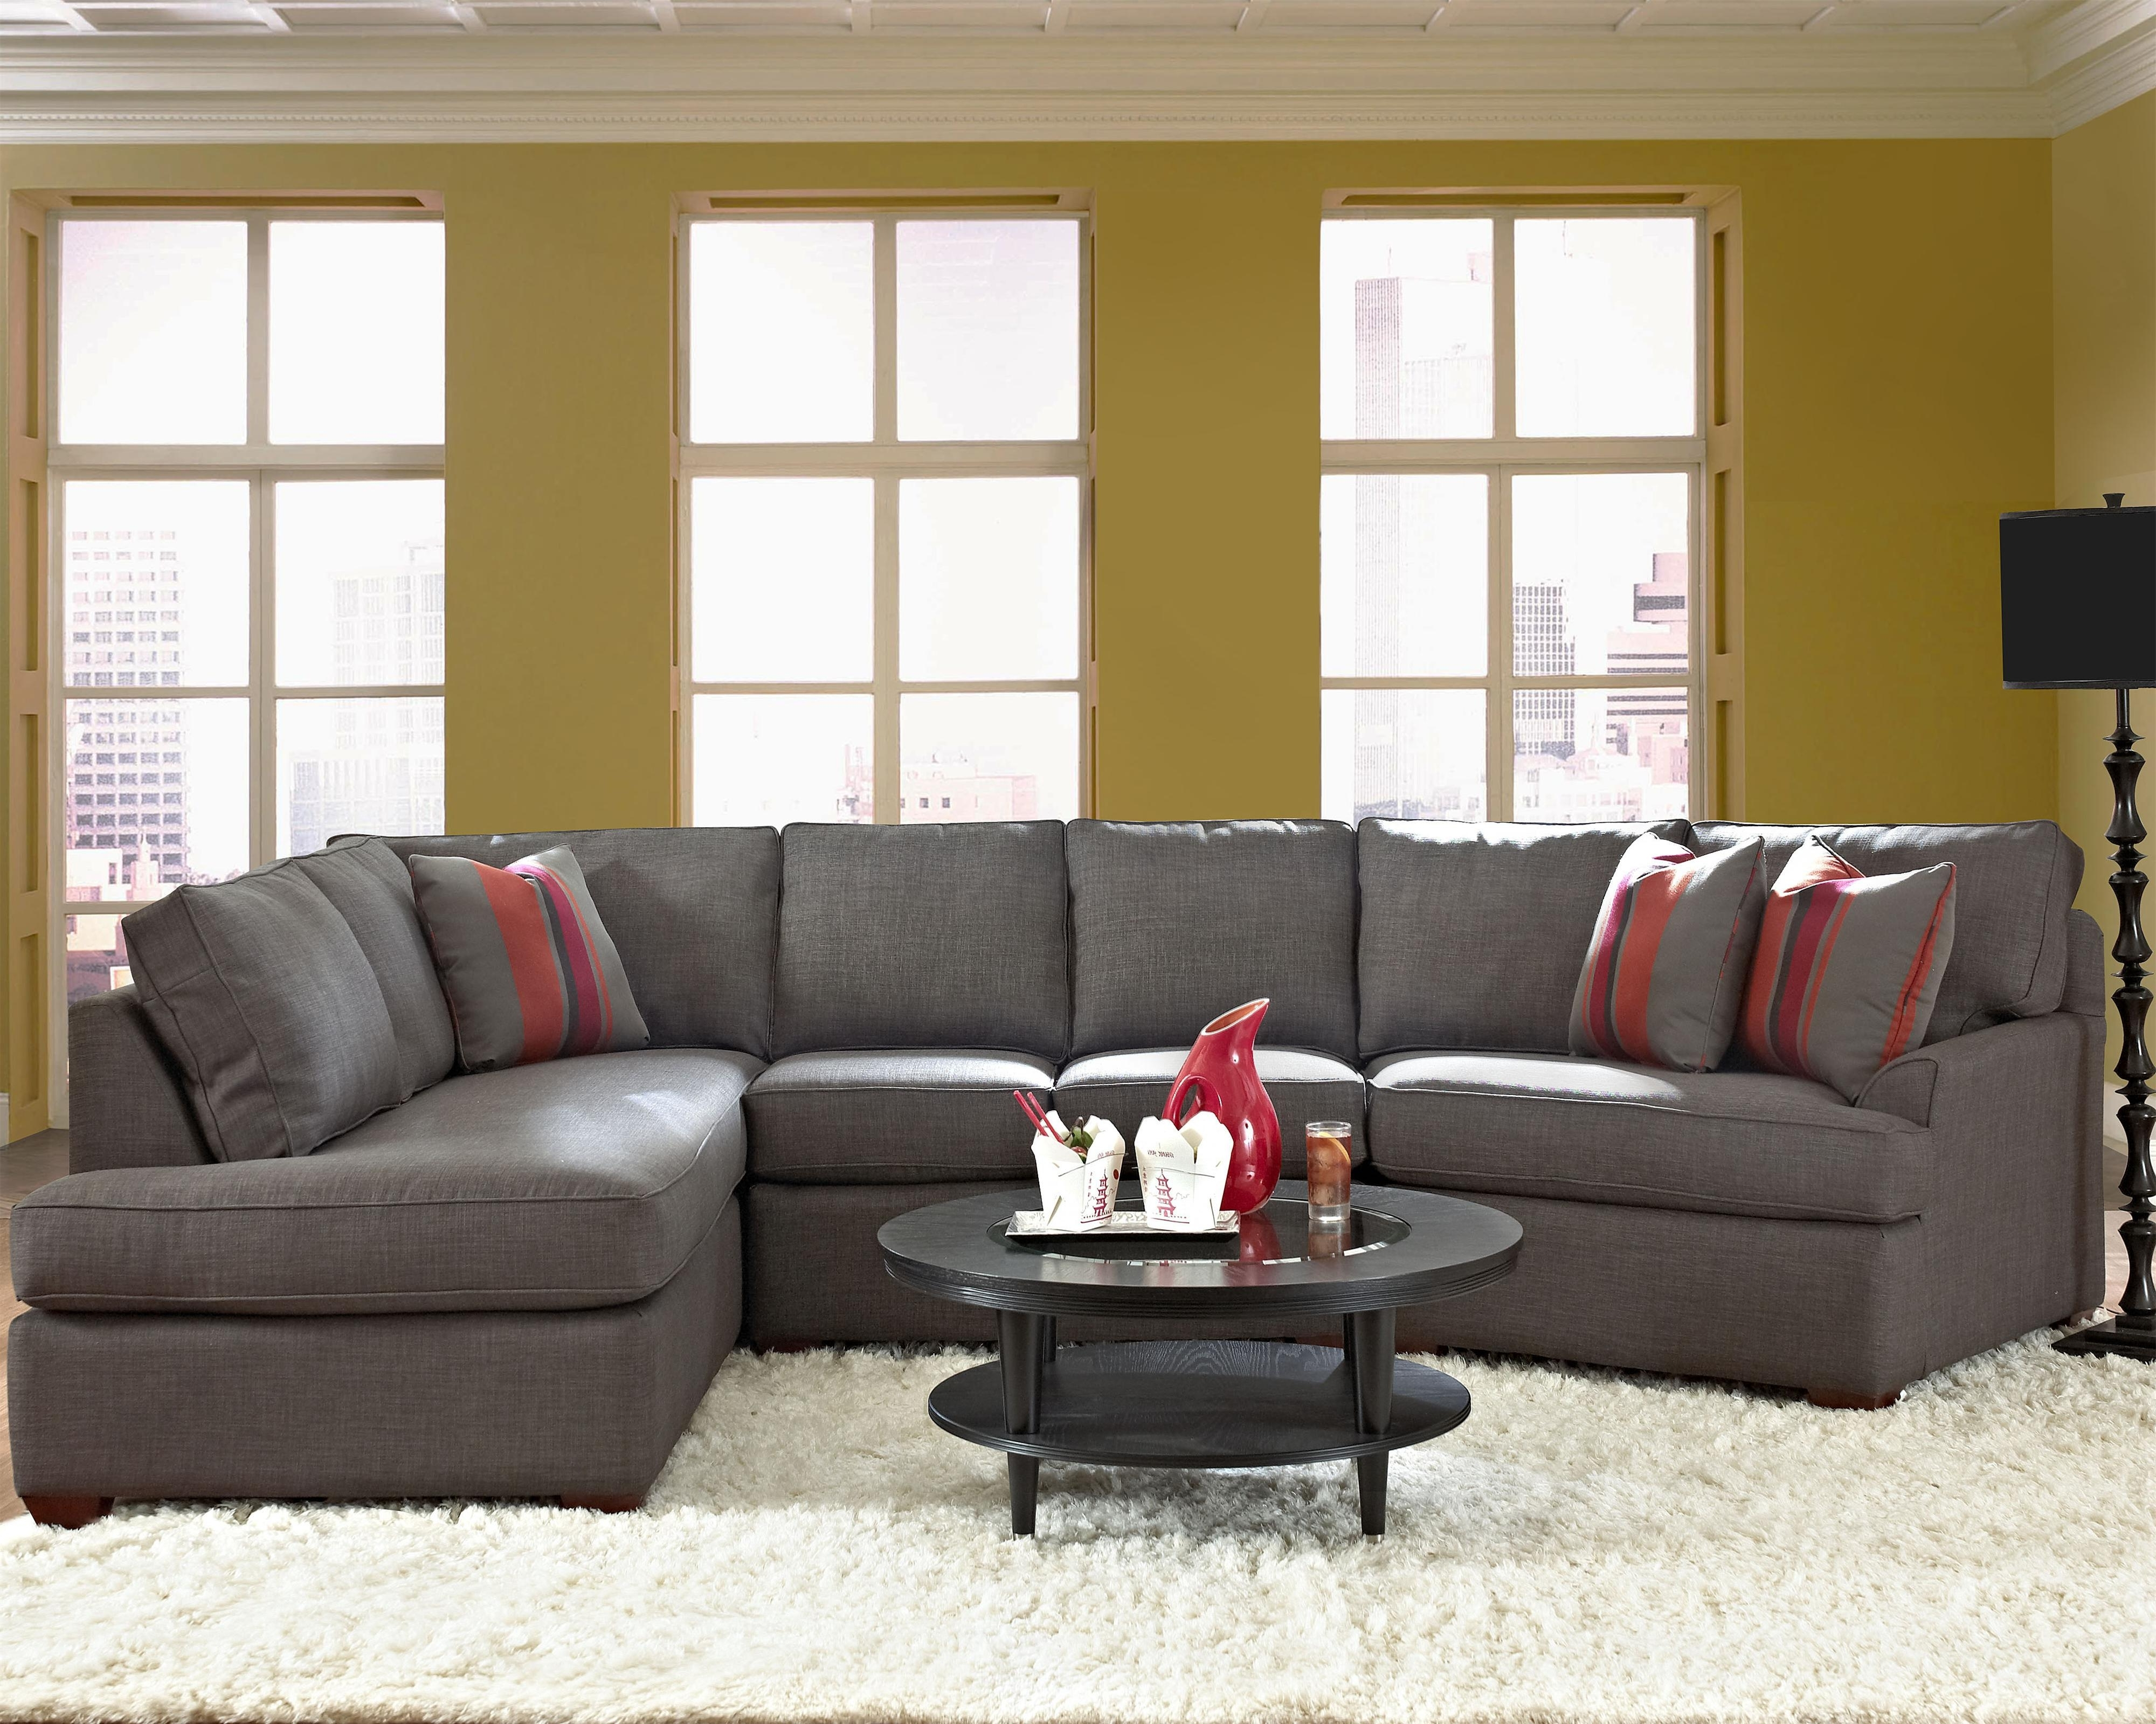 Harrisburg Pa Sectional Sofas Throughout Latest Klaussner Grady Contemporary Sectional Sofa With Right Chaise (View 5 of 15)